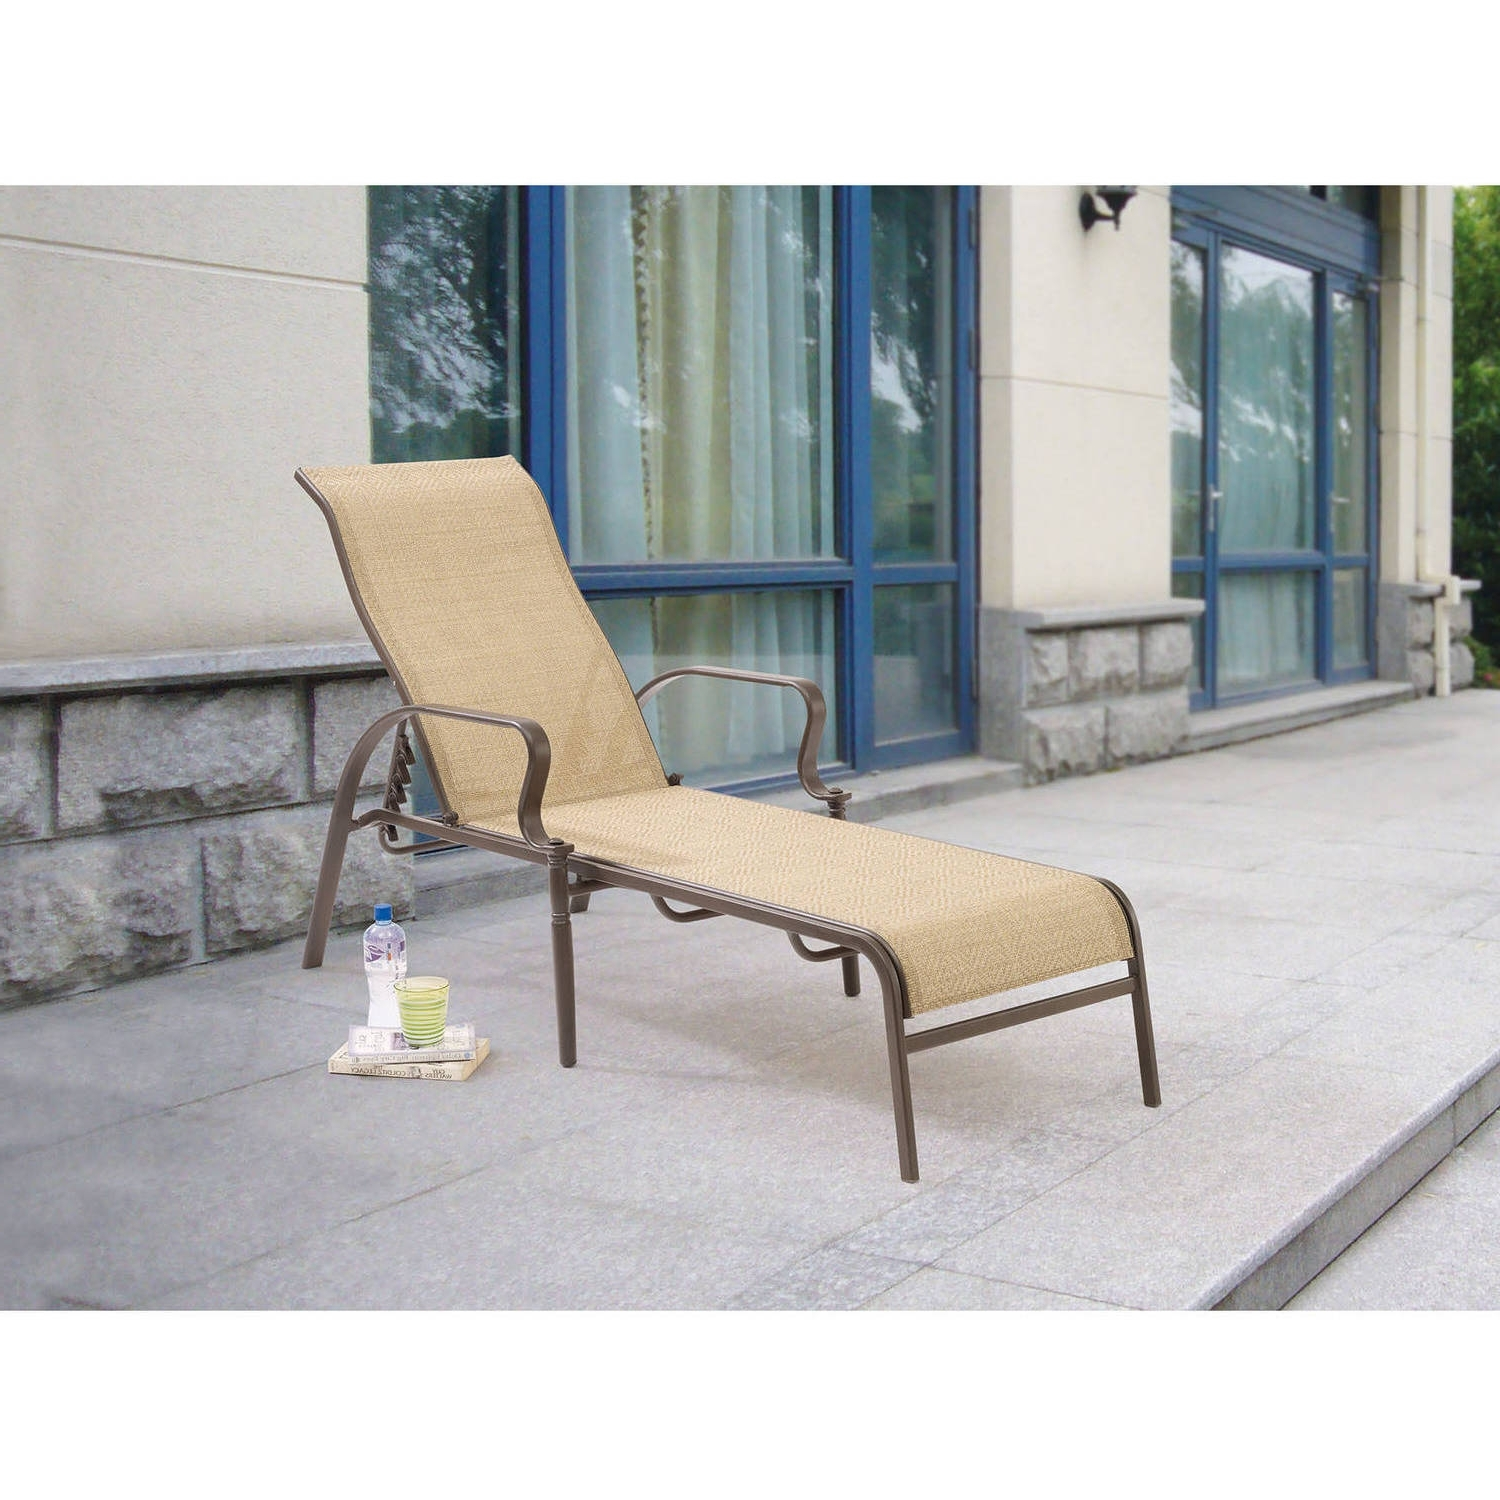 Mainstays Wesley Creek Sling Outdoor Chaise Lounge – Walmart In Popular Walmart Chaises (View 7 of 15)